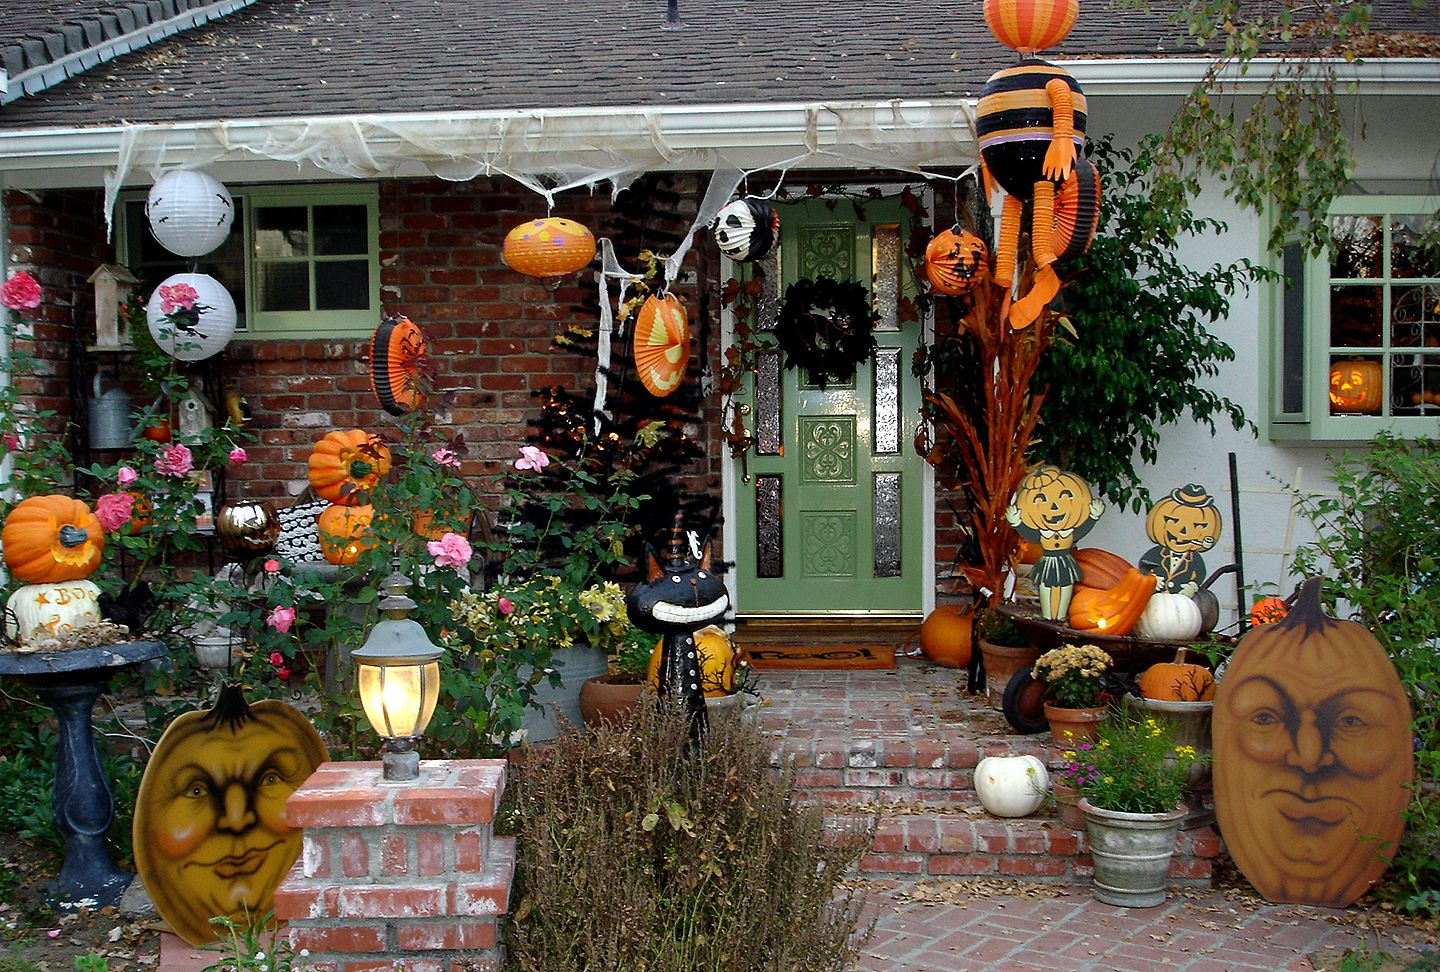 SPOOKY OUTDOOR DECORATIONS FOR THE HALLOWEEN NIGHT Halloween Ideas - Halloween Yard Decorations Ideas